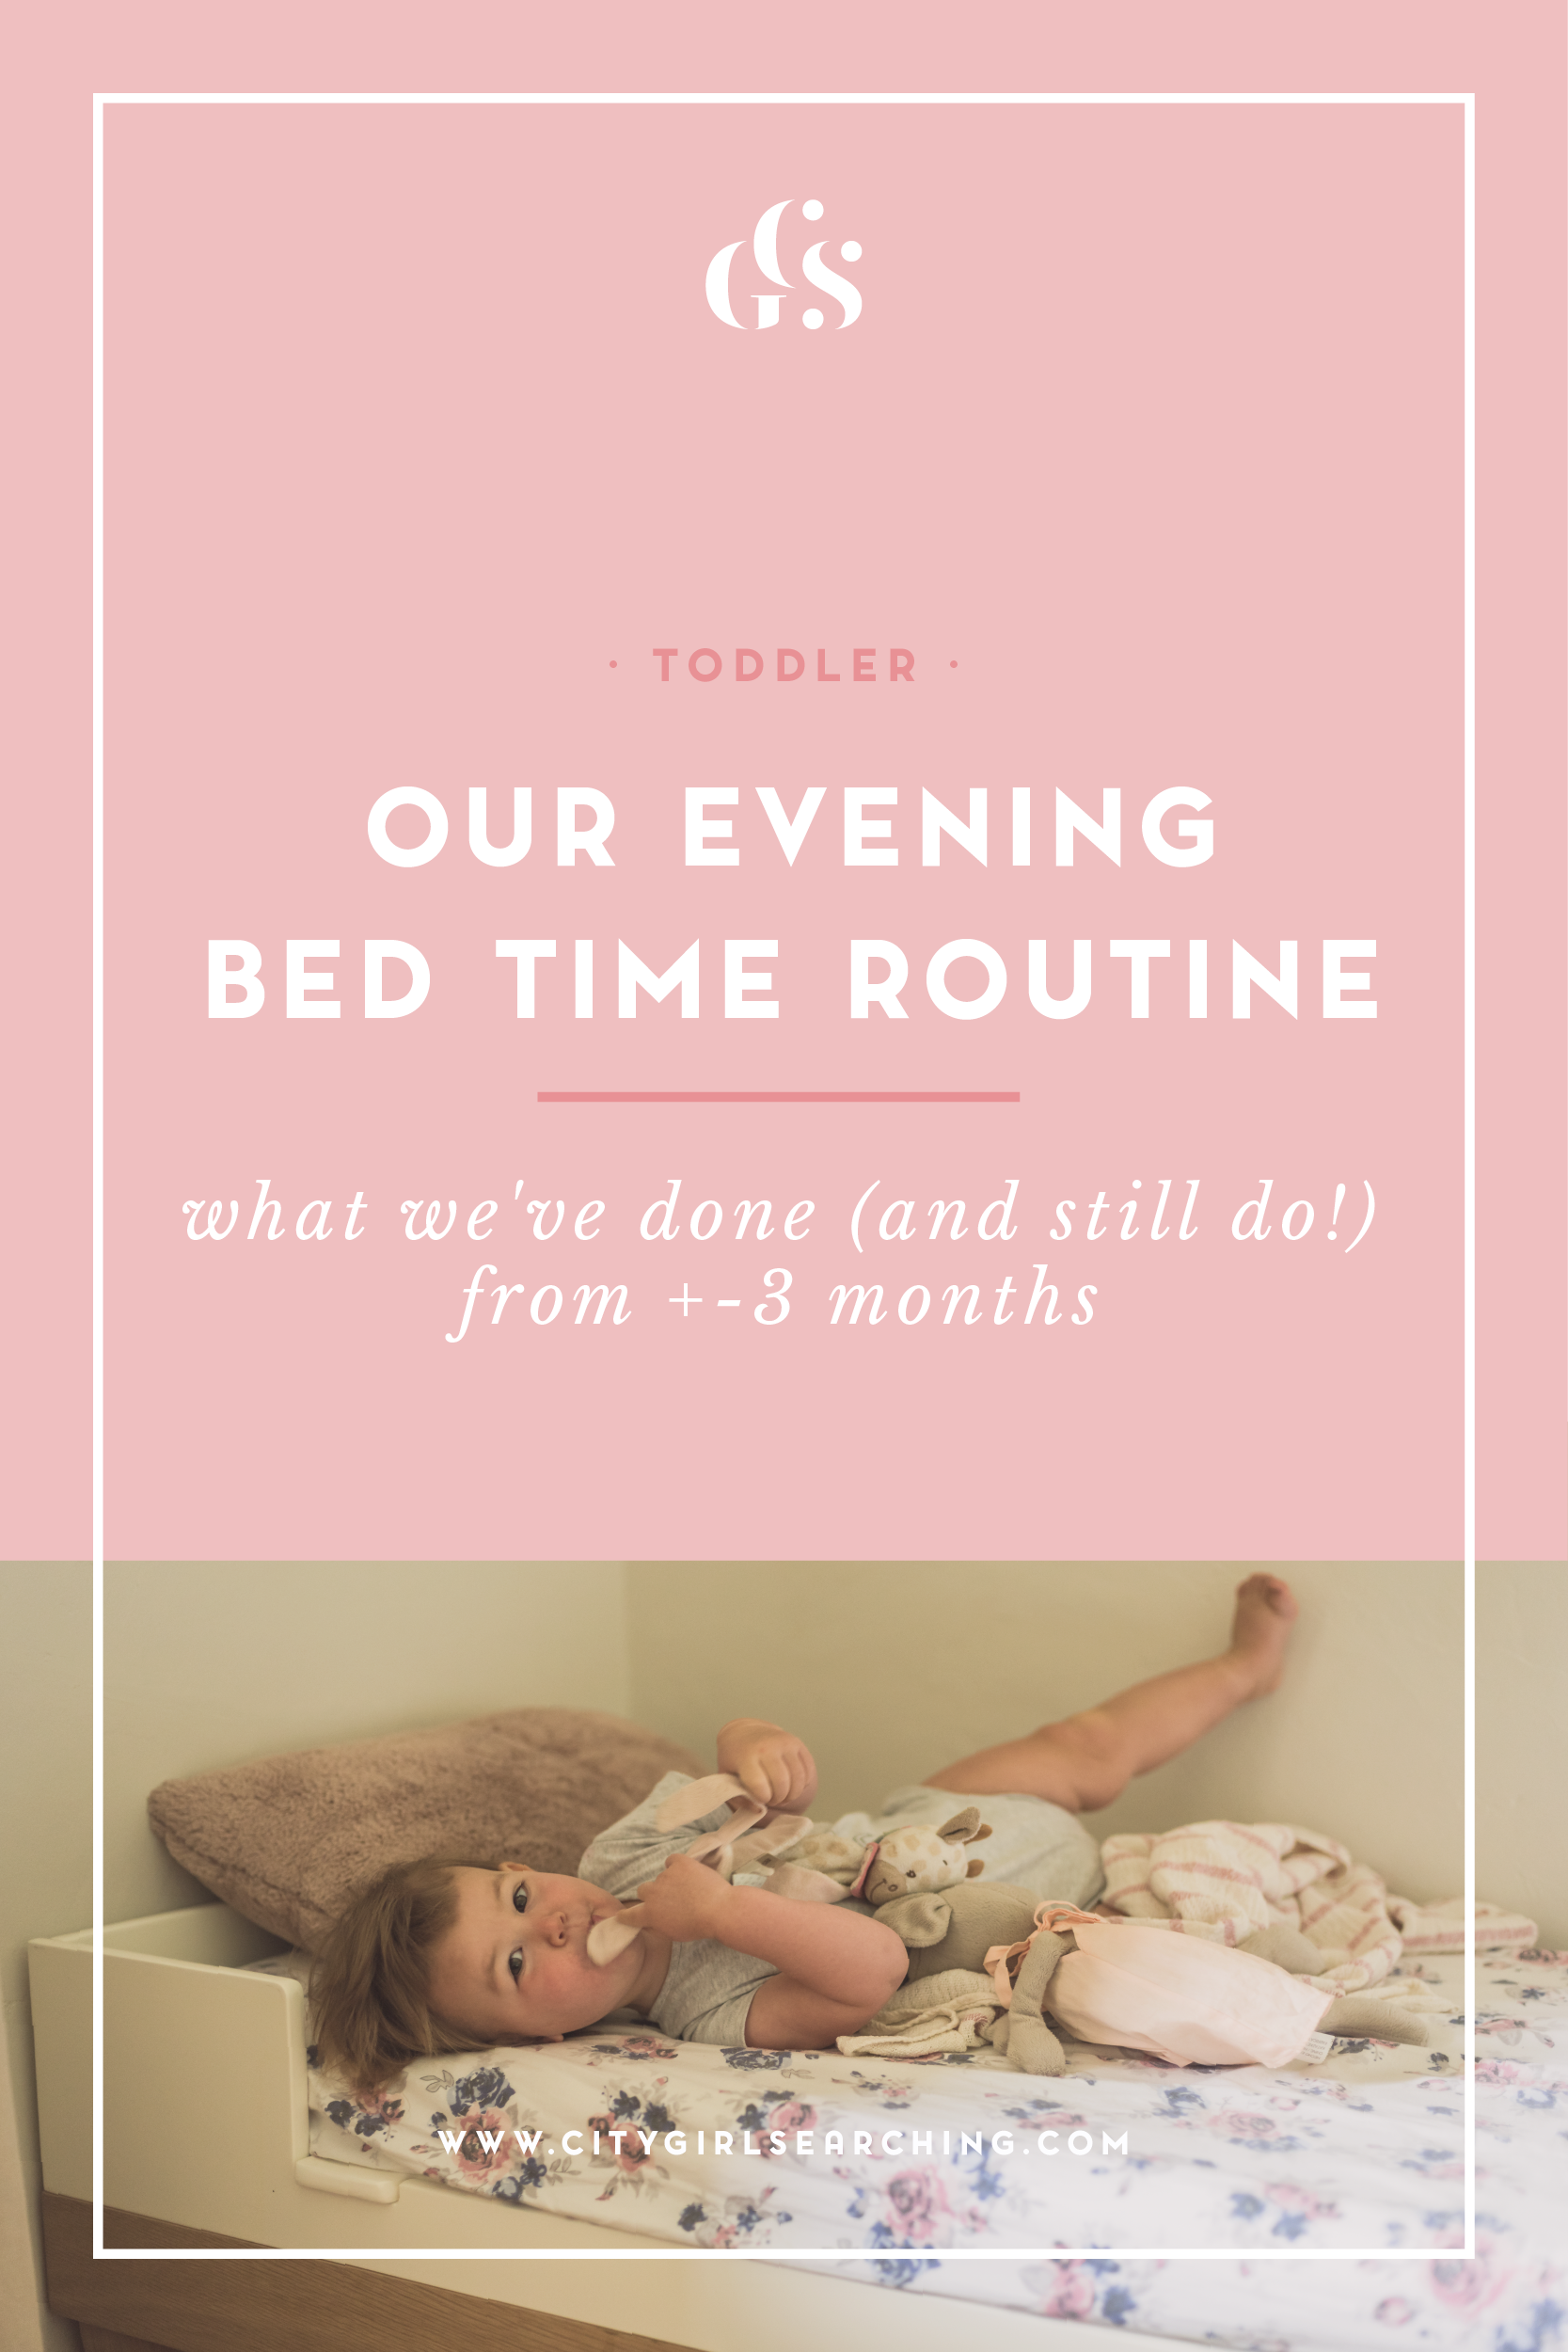 Our Toddler Evening routine what we've done from 3 months citygirlsearching blog-01.png